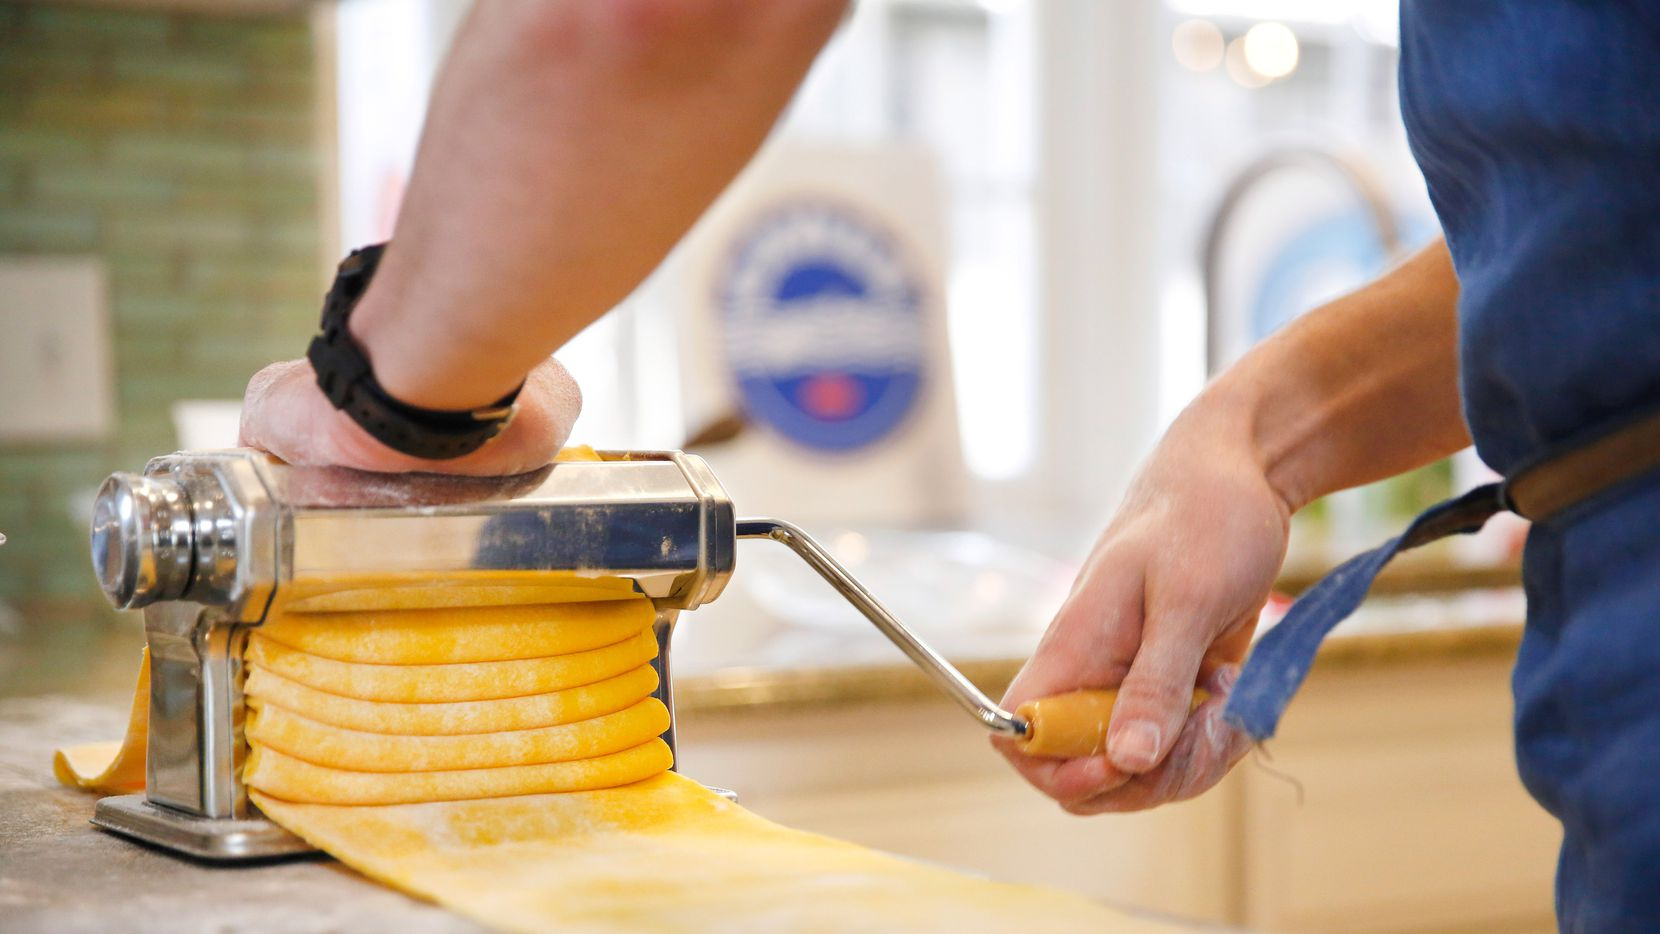 Chef Julian Barsotti uses a pasta machine to roll out lasagna sheets before par-boiling them. They will form the crust of the timpano, an elaborate, multi-layered Italian dish.